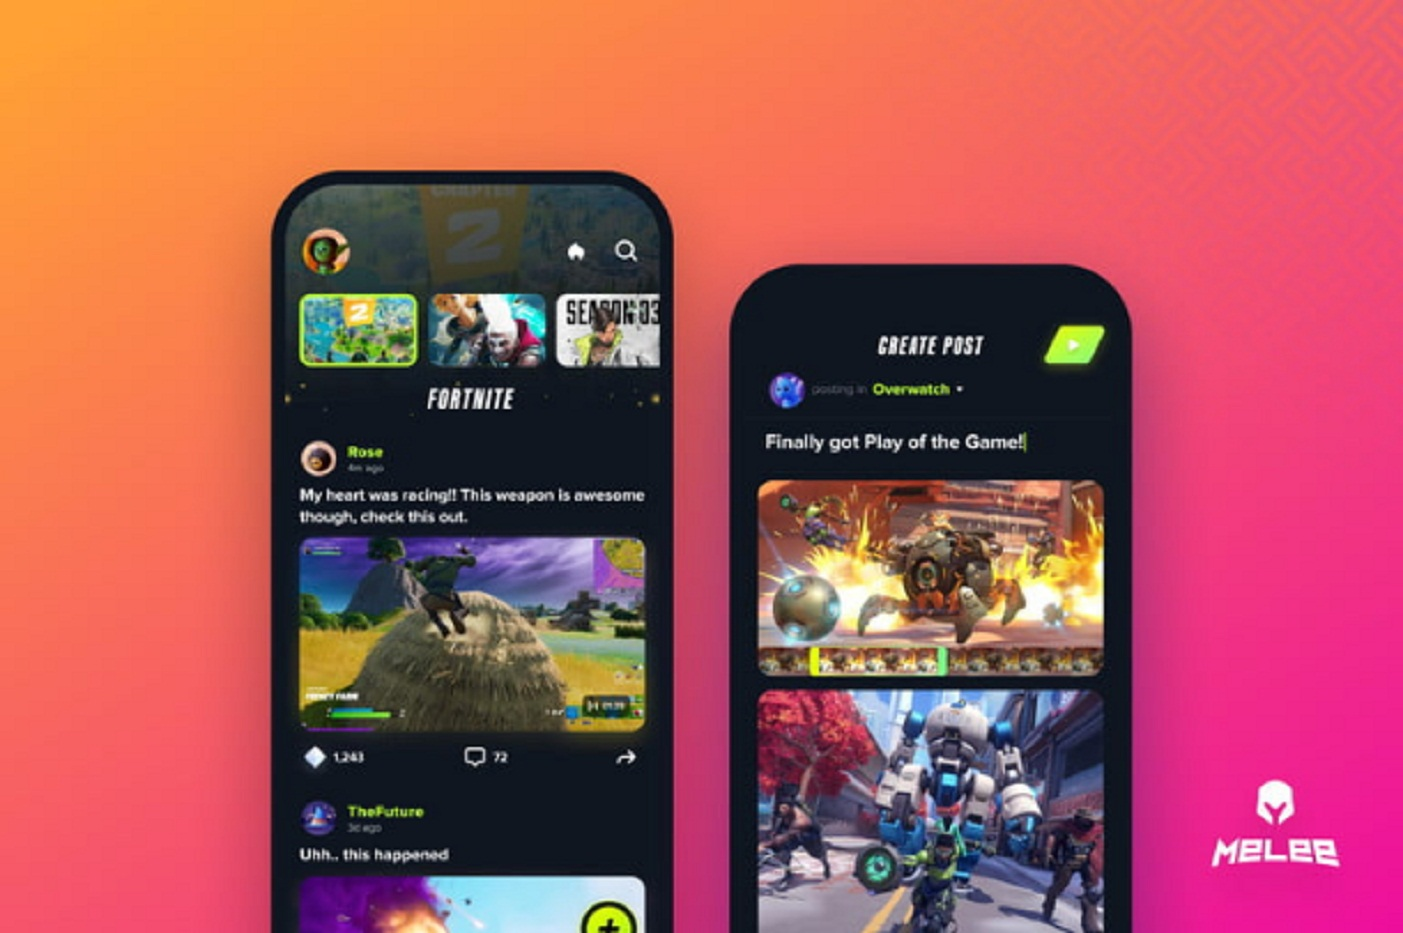 Imgur Launches A New Social Sharing App Where Users Can Watch Highlights, Memes, And Video From Their Favorite Games